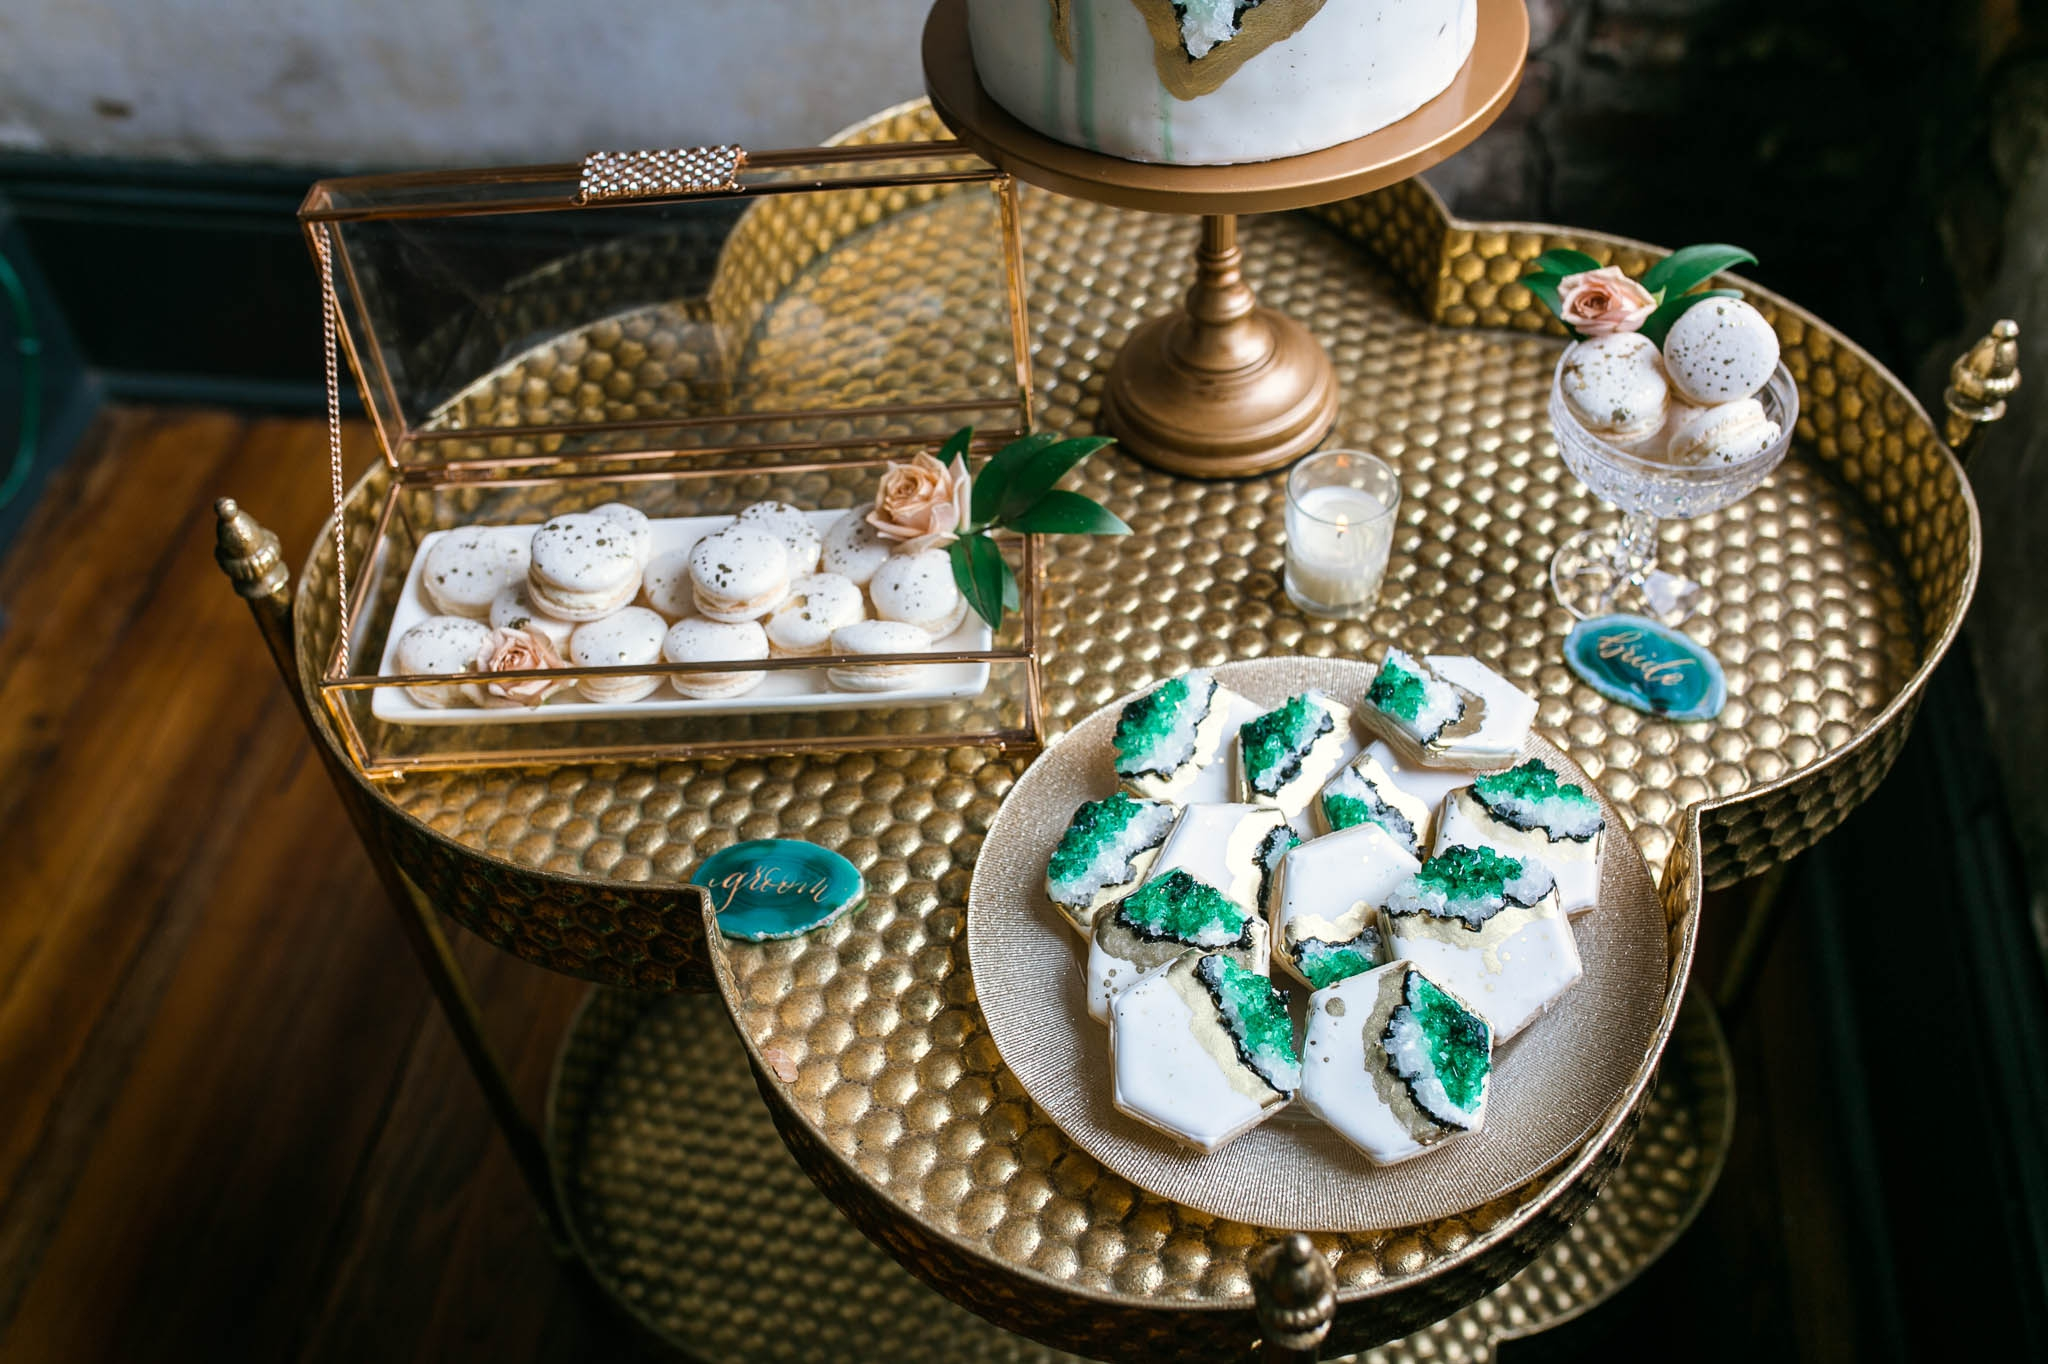 Close up of the Wedding Desert Table with a Geode Wedding Cake, Macaroons and Geode Cookies in Emerald, Marble and Gold Colors - Oahu Hawaii Wedding Photographer